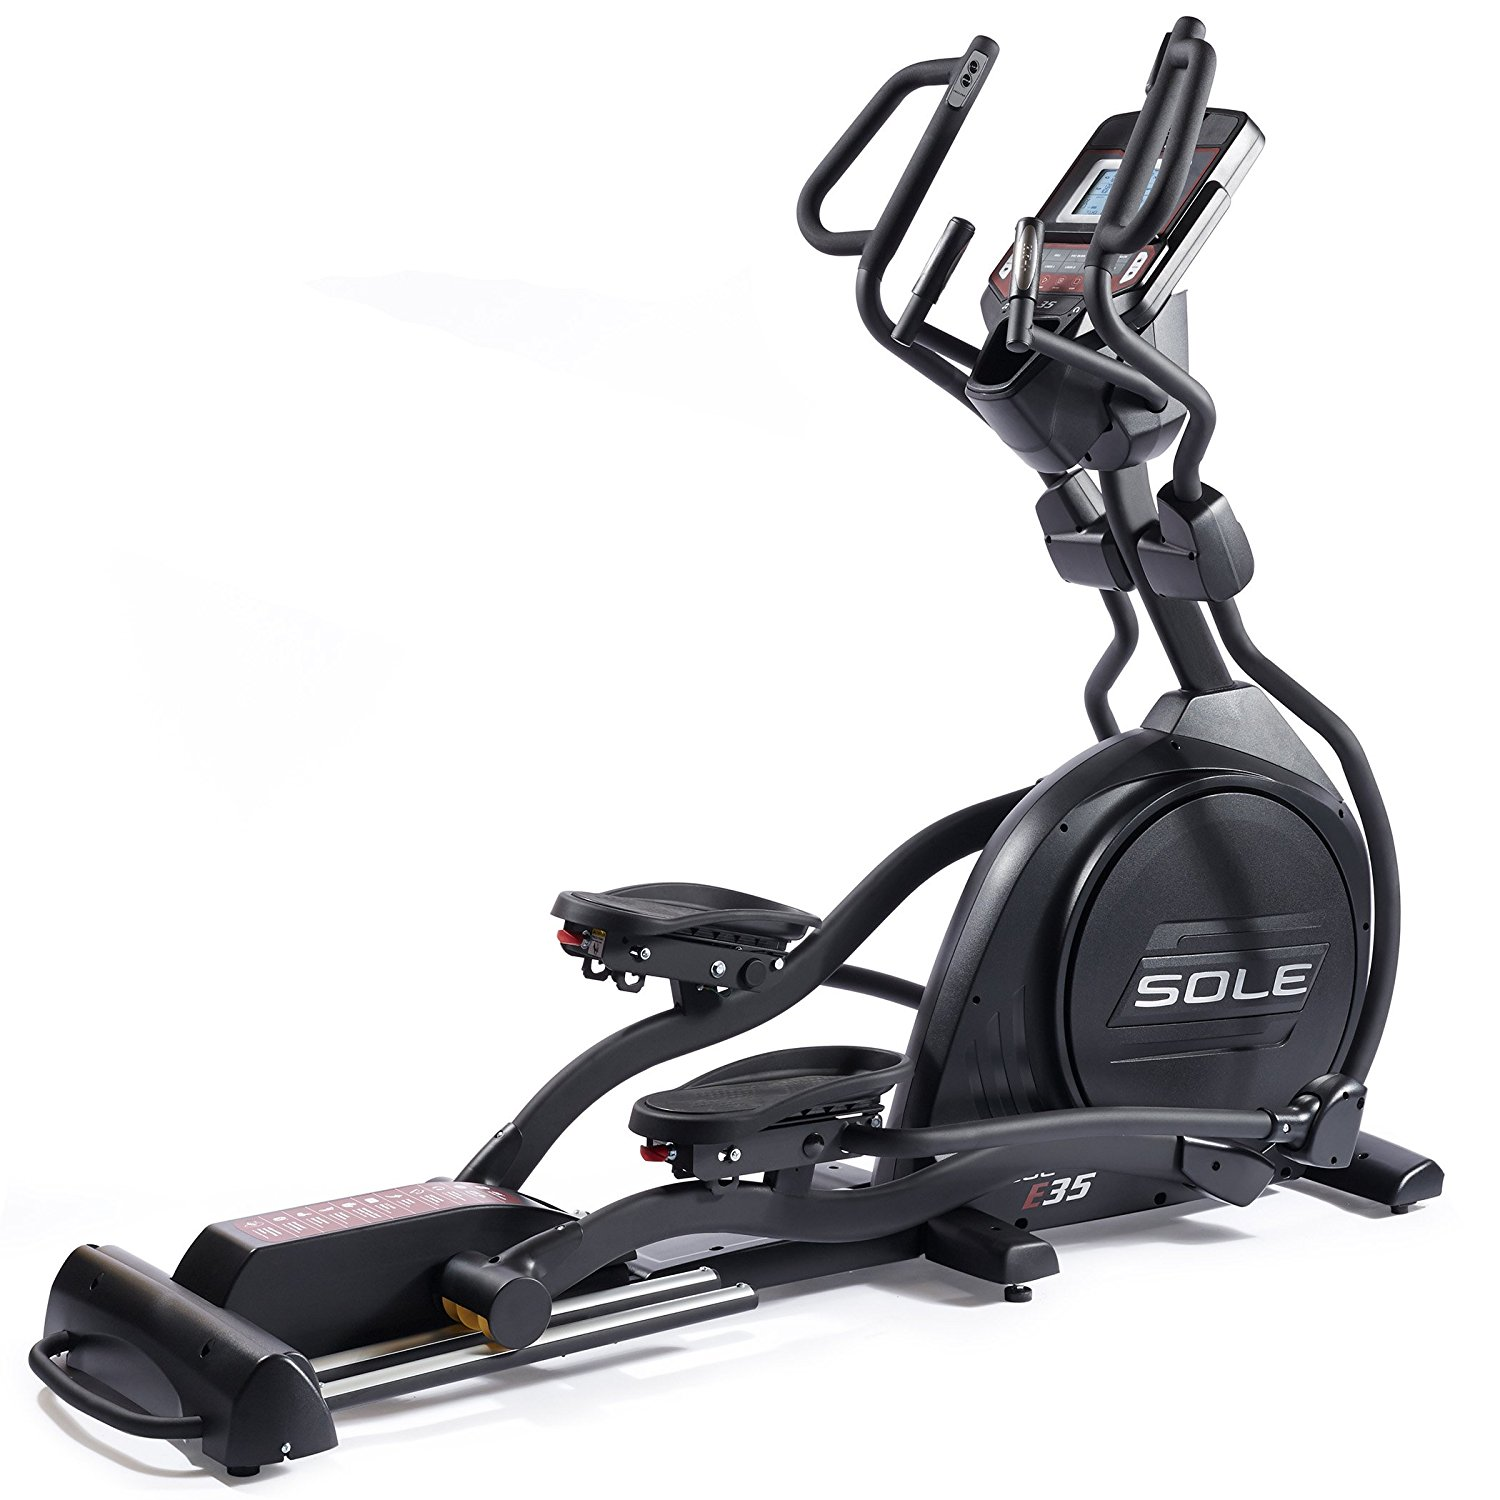 Sole Fitness E35 Elliptical Machine With Heart Rate Monitor – Available With or Without Expert Assembly